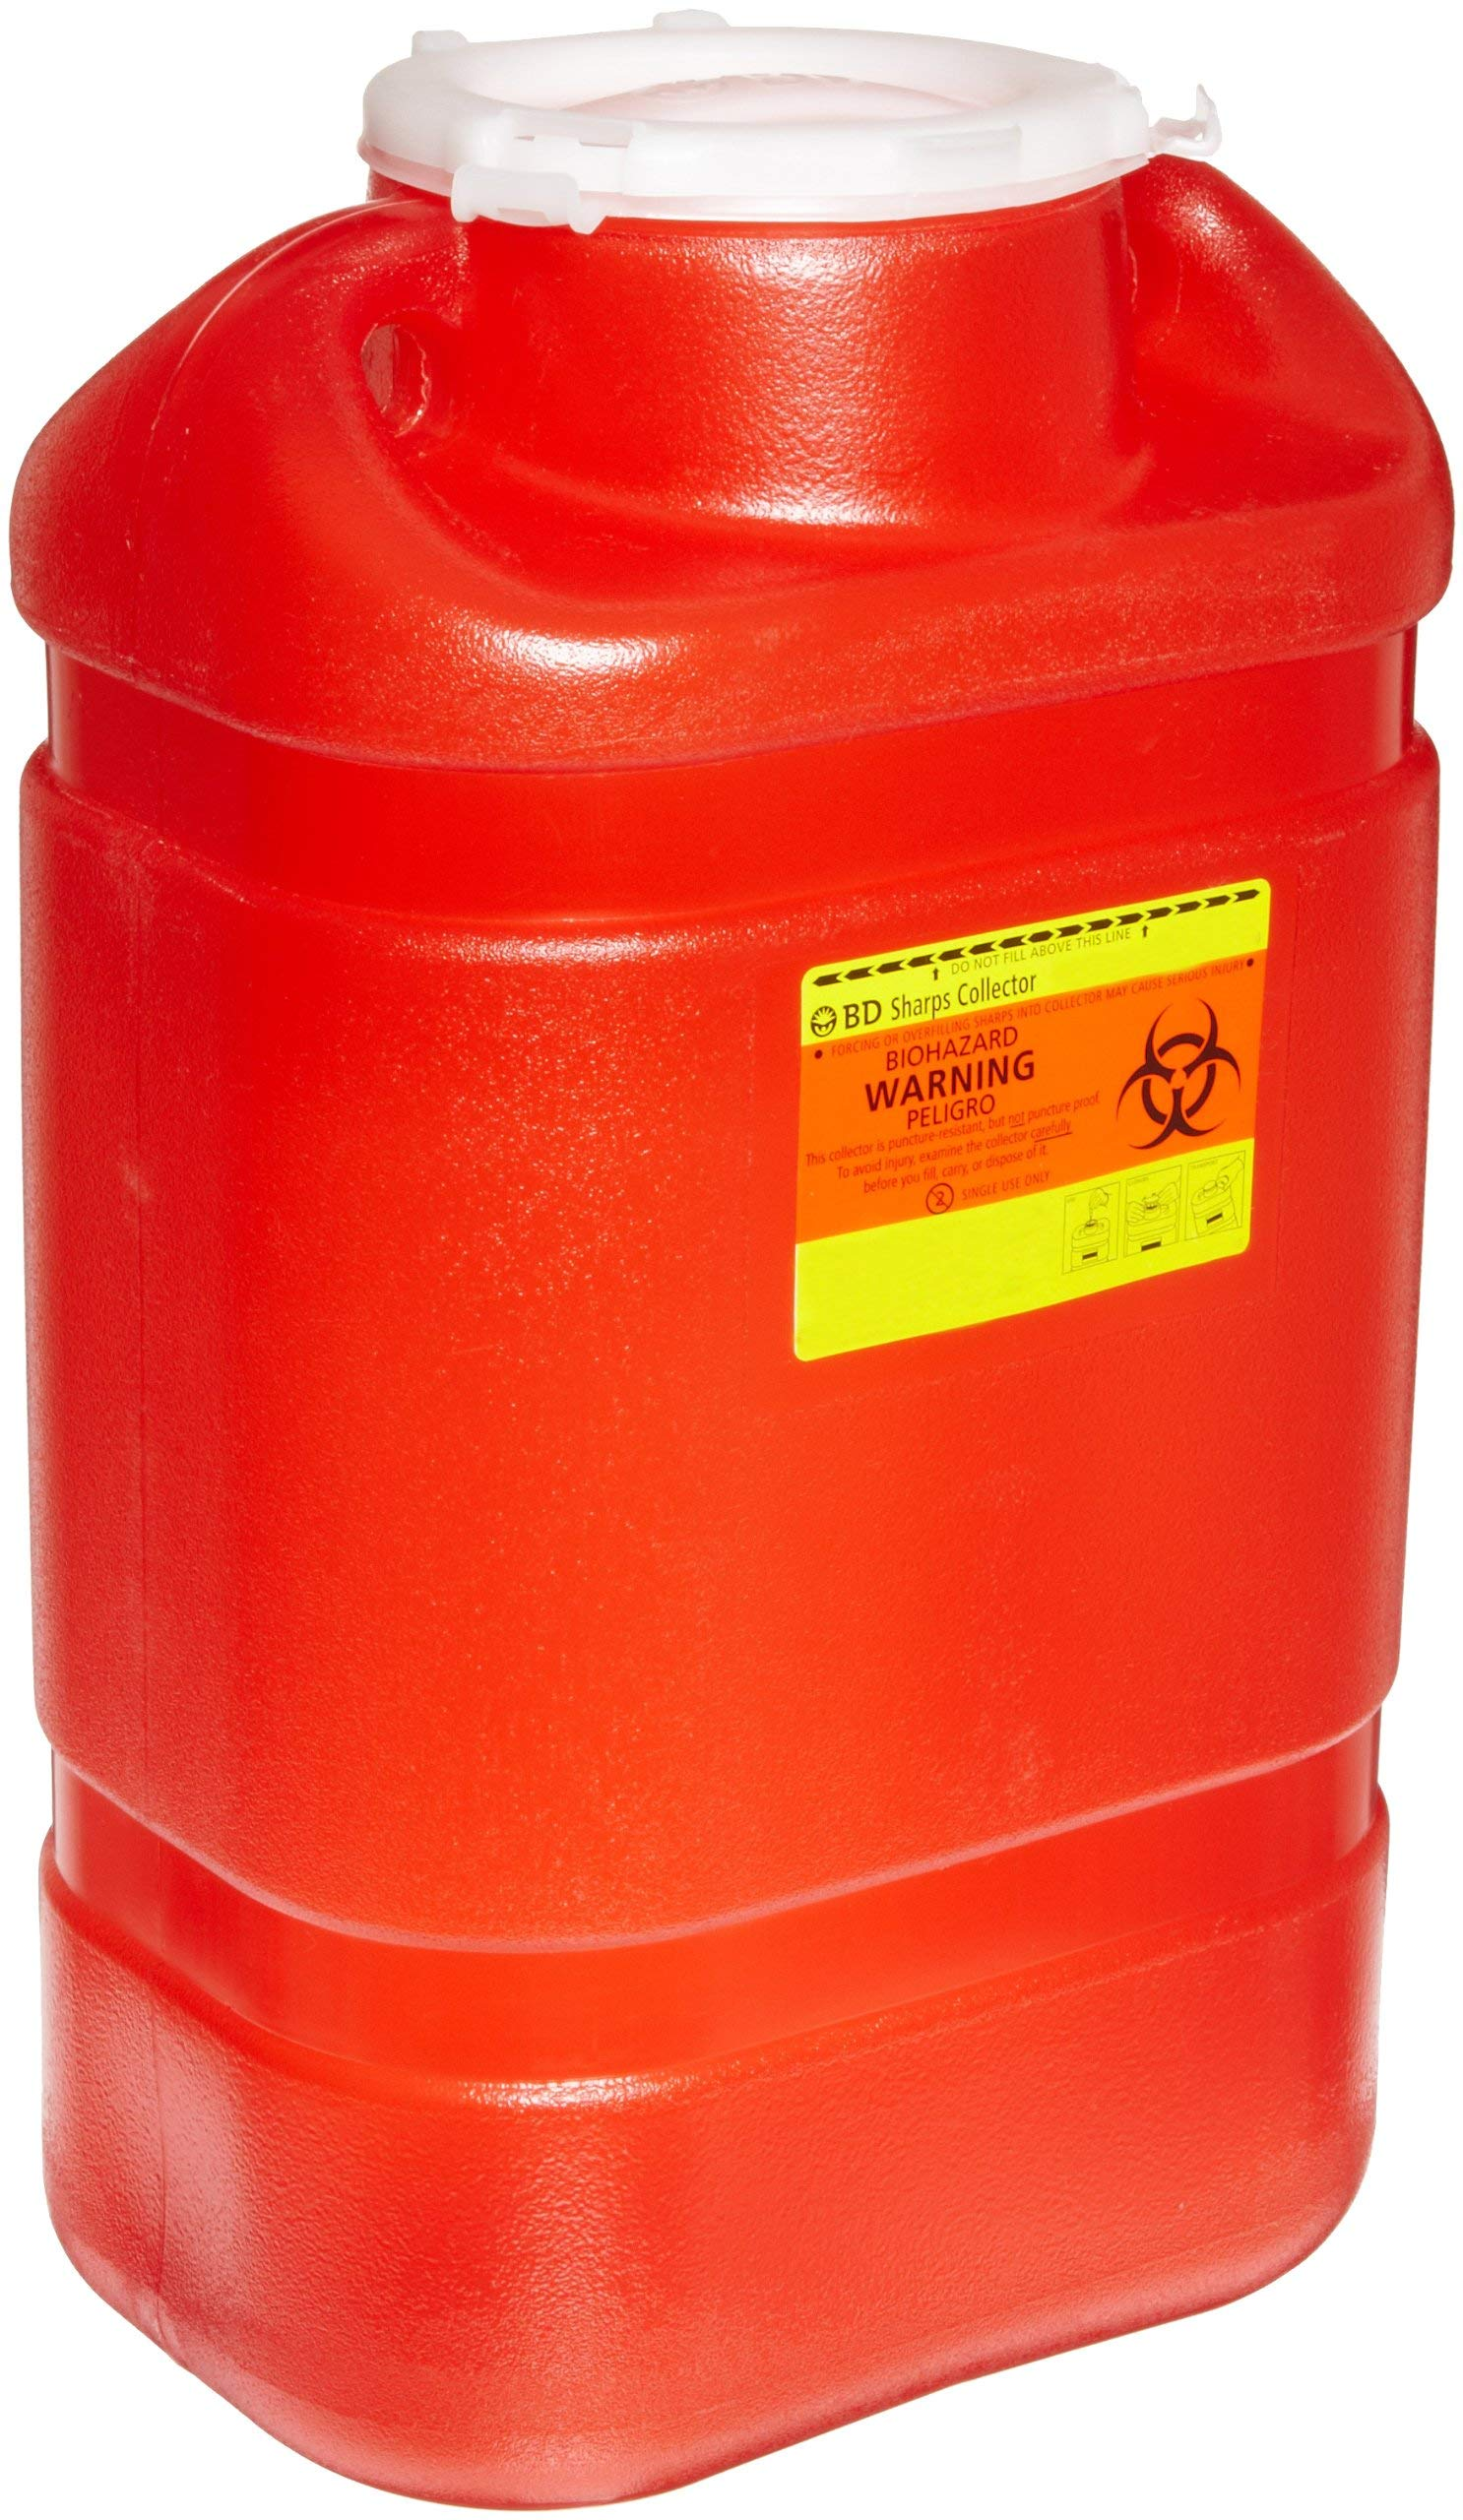 BD Multi-Use Sharps Collector, 6.9 Qt, Medium, Red 305489